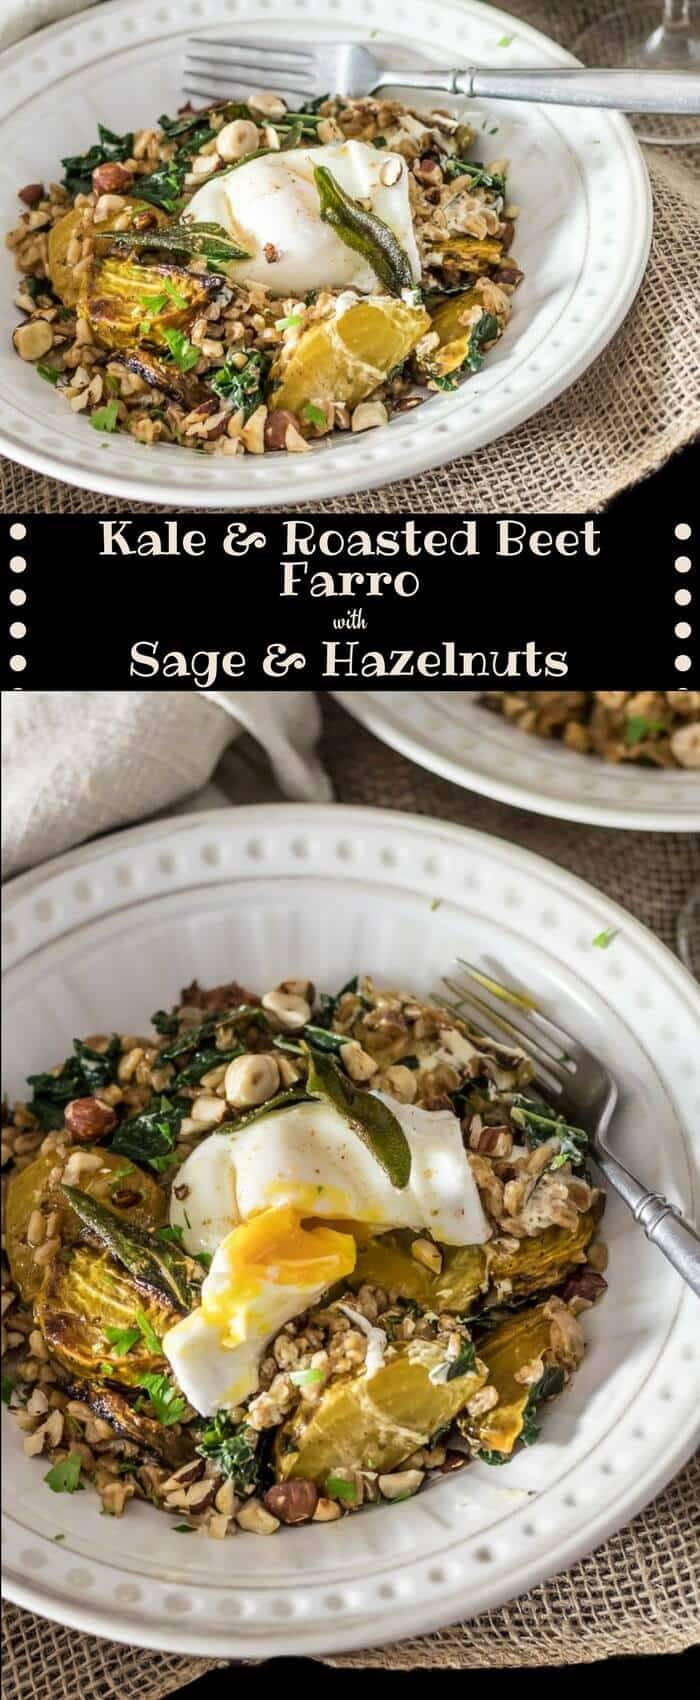 Kale and Roasted Beet Farro With Sage and Hazelnuts - Kale and Roasted Beet Farro With Sage and Hazelnuts is perfect for #meatlessmonday or anytime you're looking for a healthy, comforting, and flavorful vegetarian dish... Topped with a poached egg and drizzled with crispy sage browned butter, this dish may convince even the meat eaters in your life!